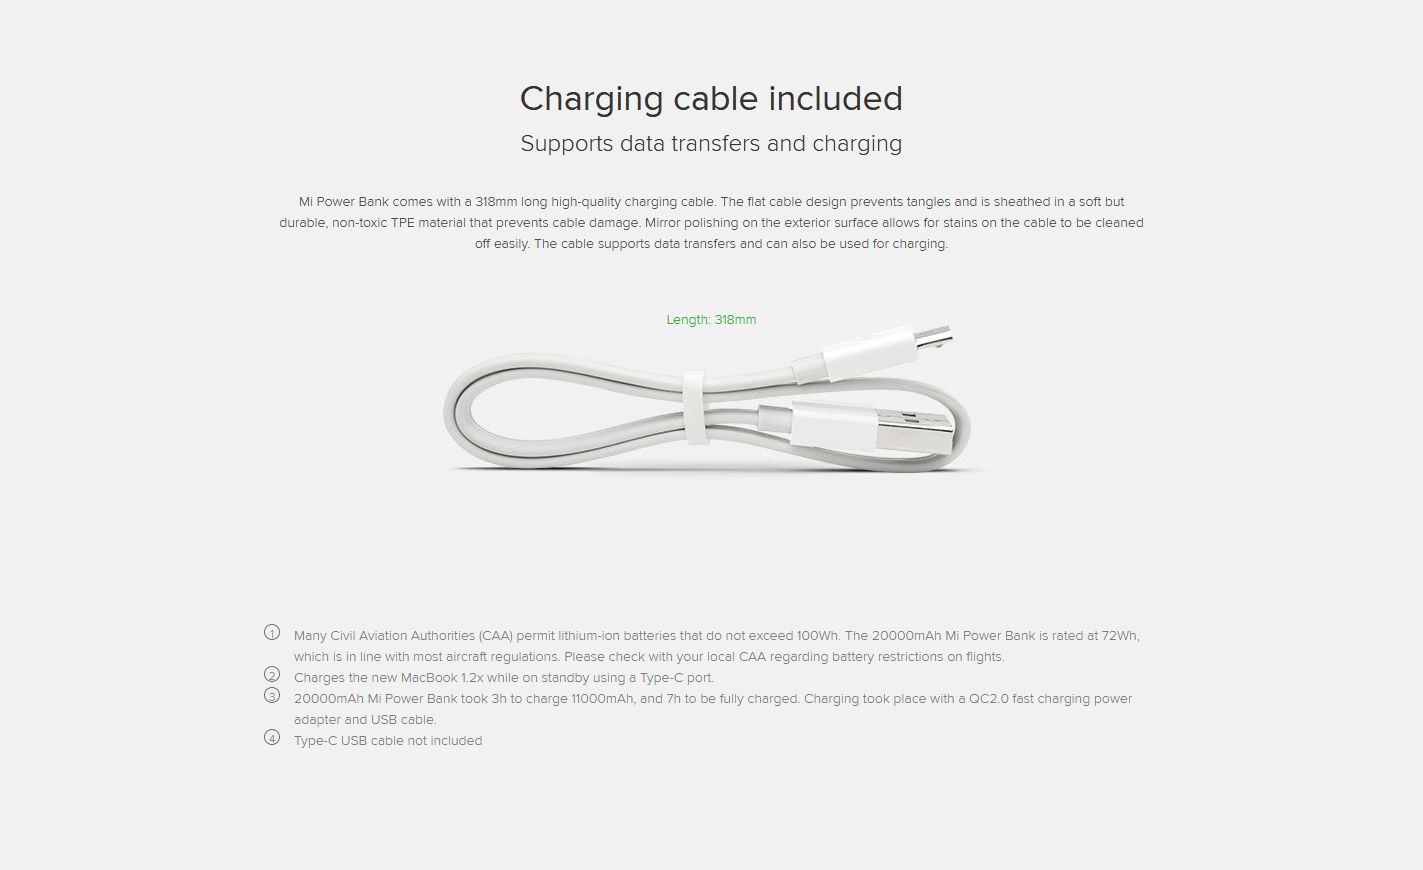 Charging Cable Included